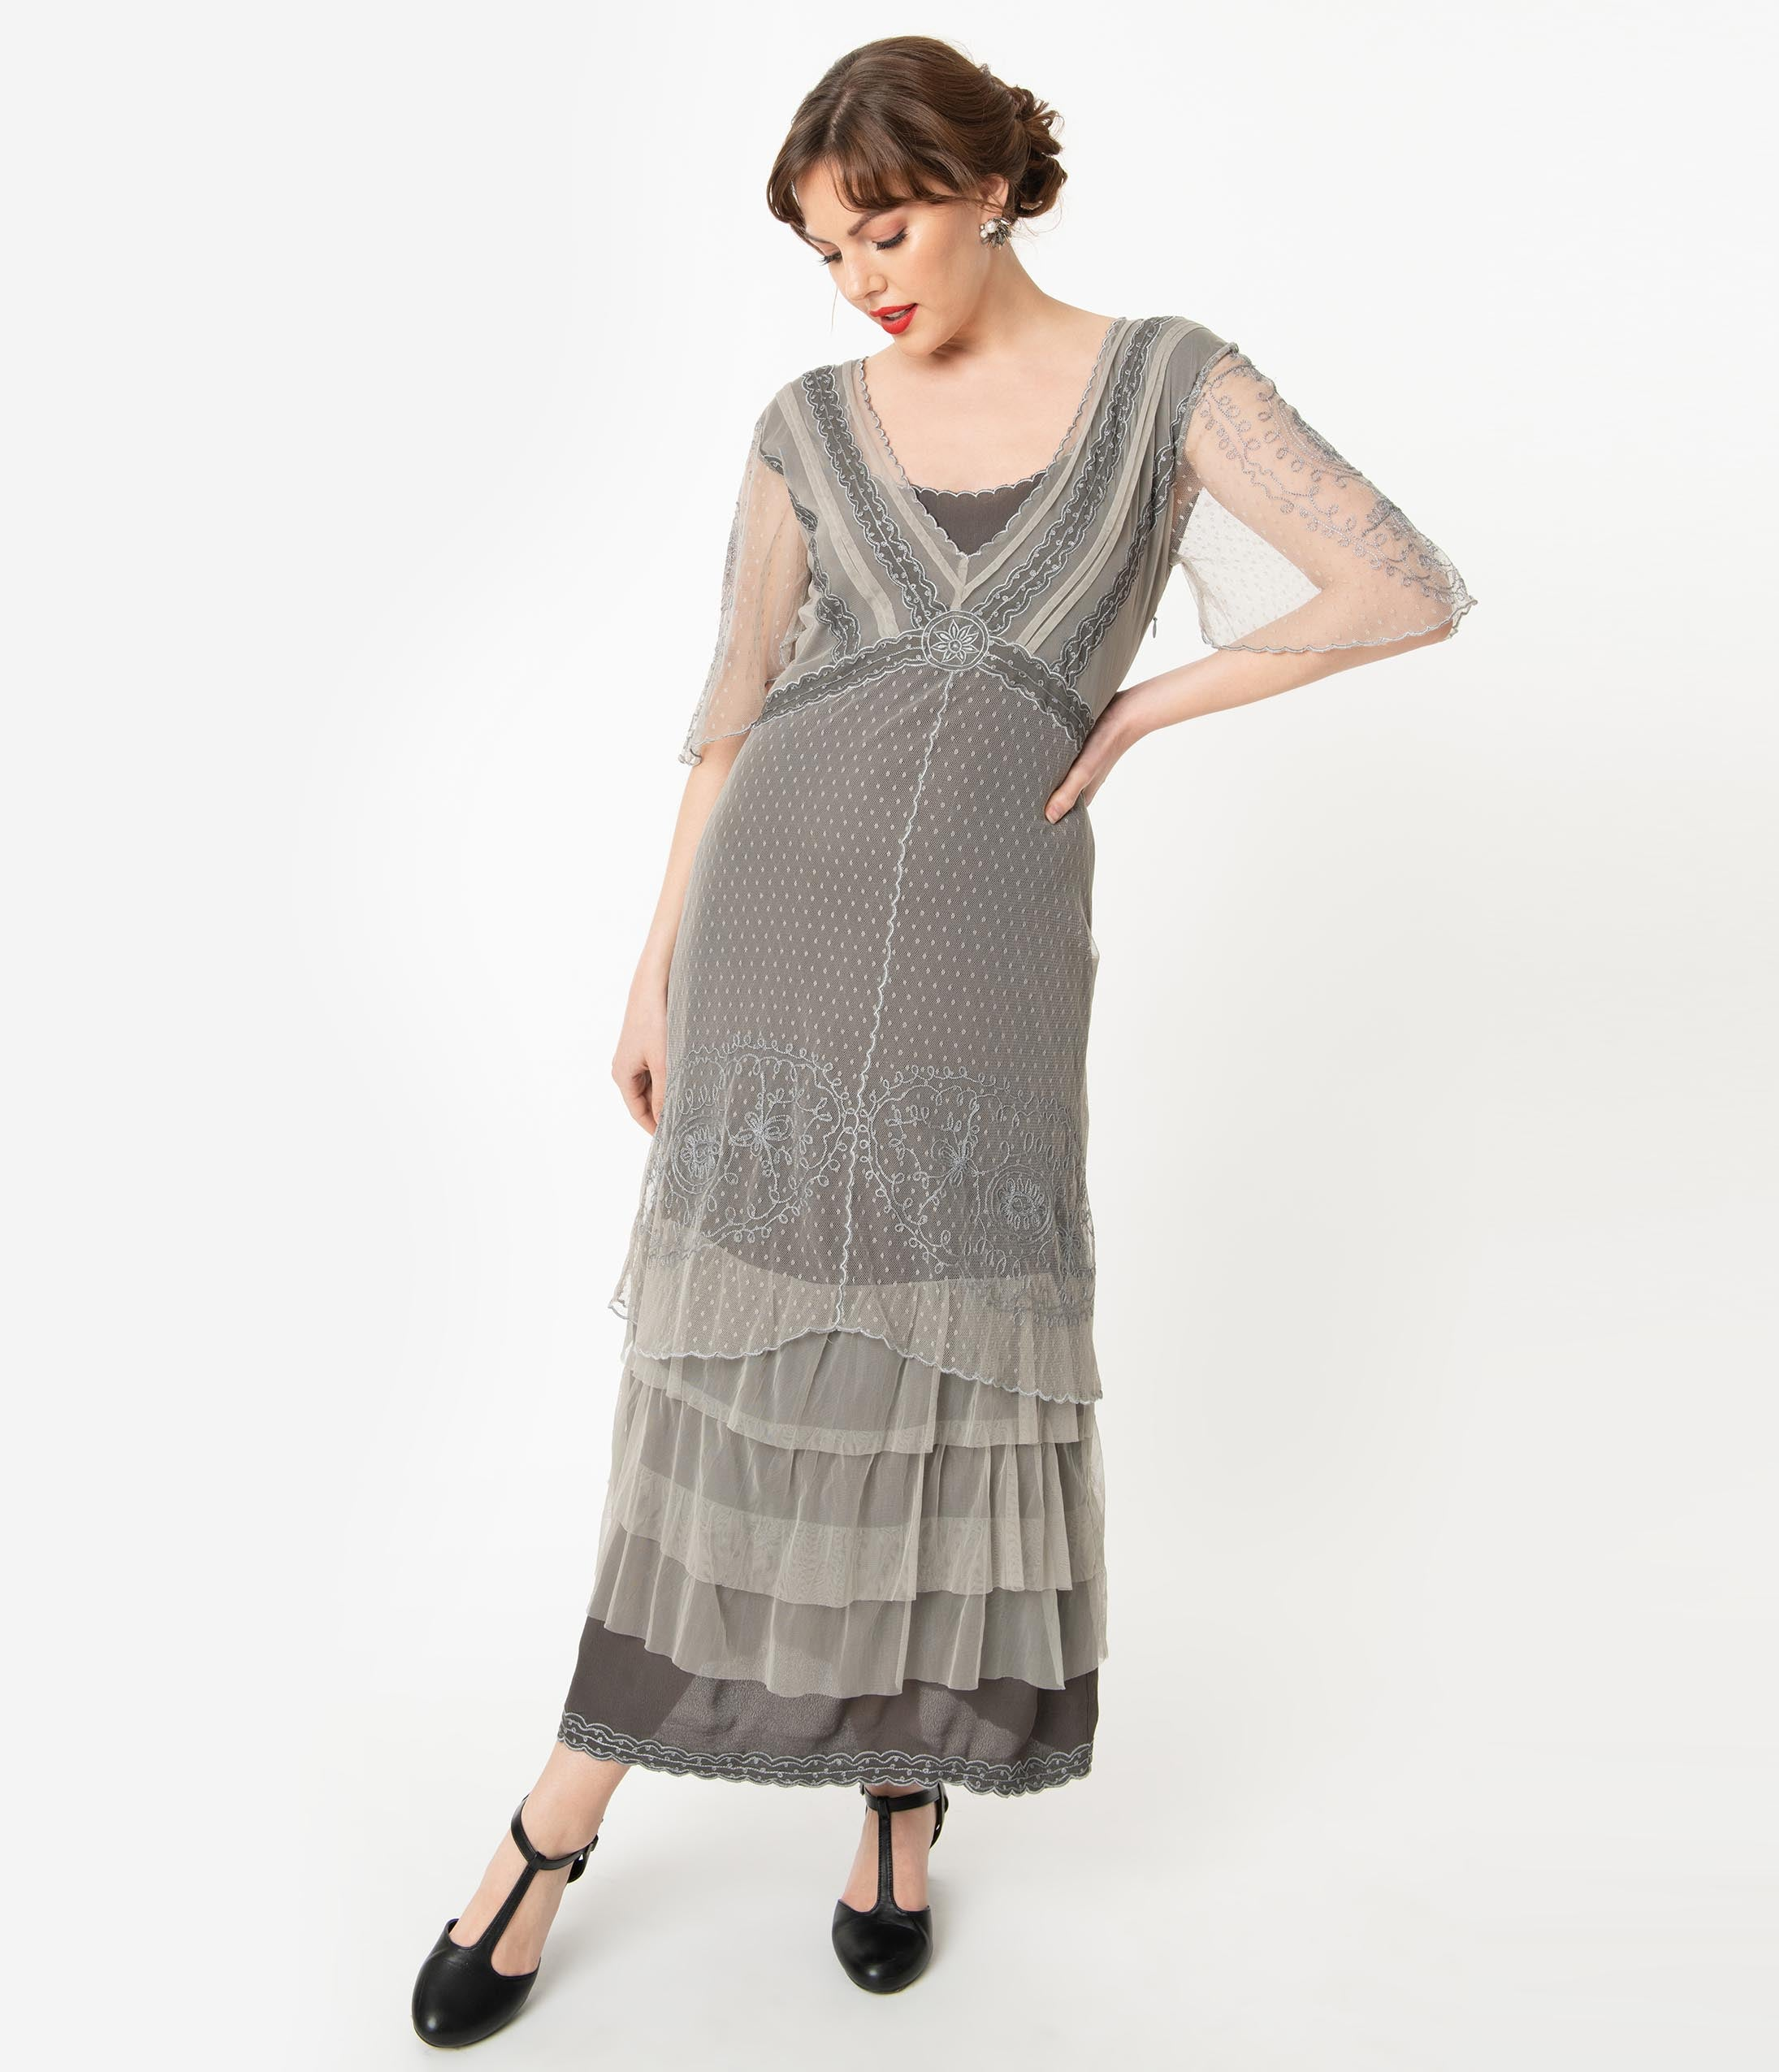 1920s Outfit Ideas: 10 Downton Abbey Inspired Costumes Vintage Style Alluring Slate Downton Abbey Edwardian Flapper Dress $288.00 AT vintagedancer.com